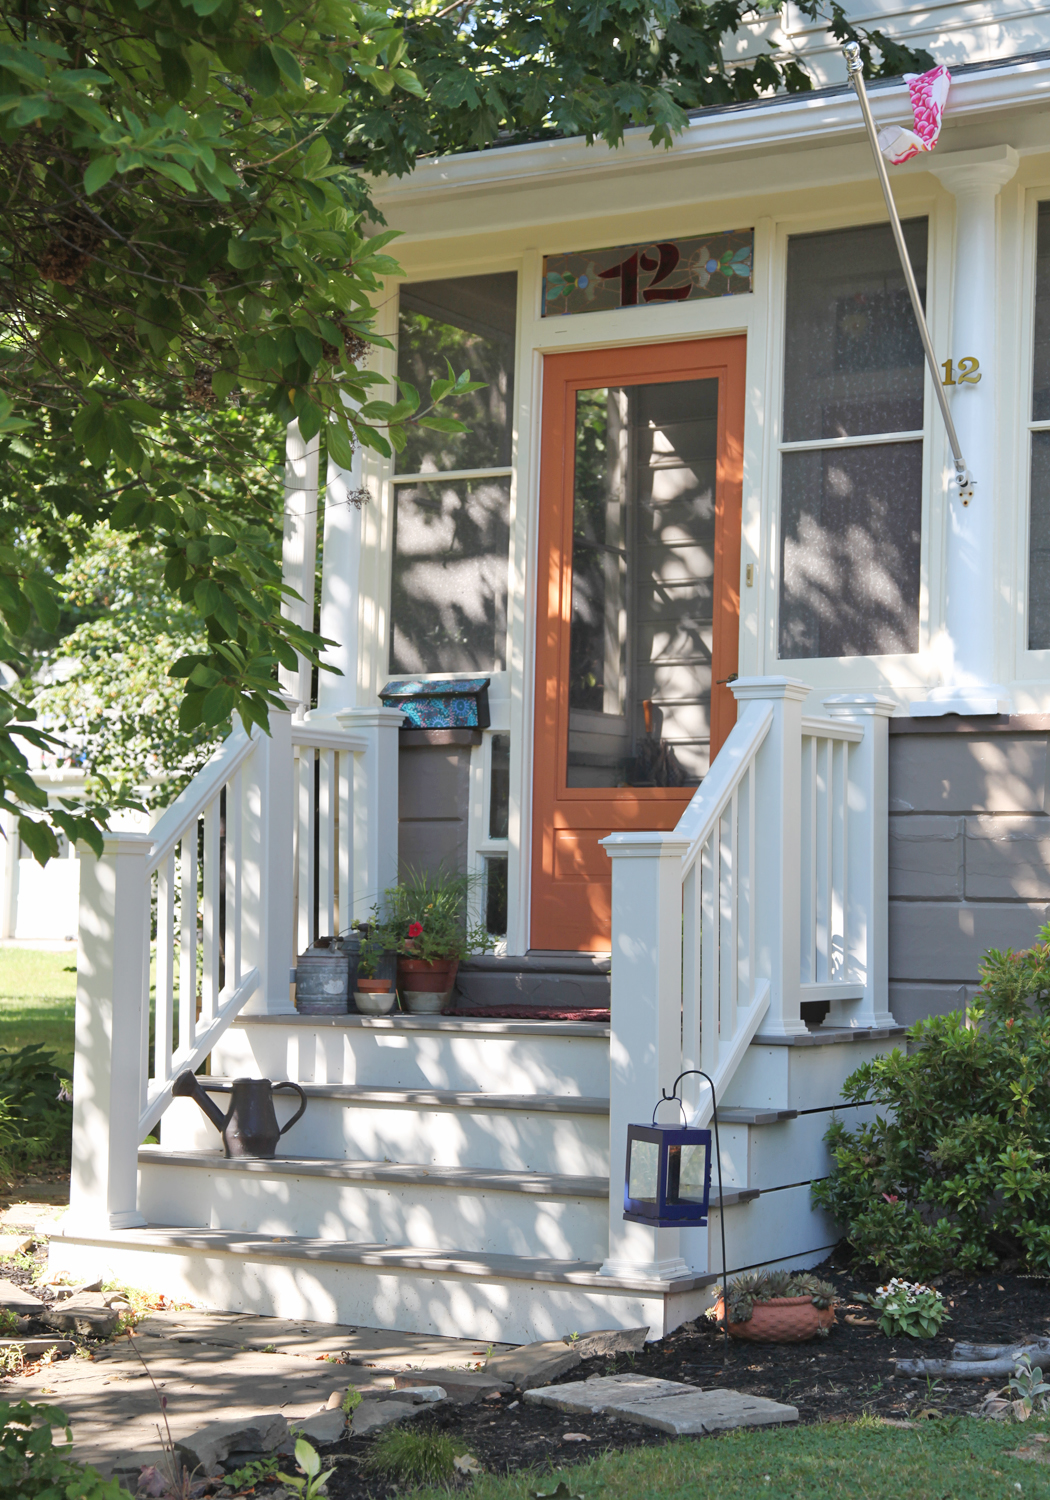 Small Front Porches Designs Front Porch Steps Porch Design: Sarah's Front Porch & Curb Appeal